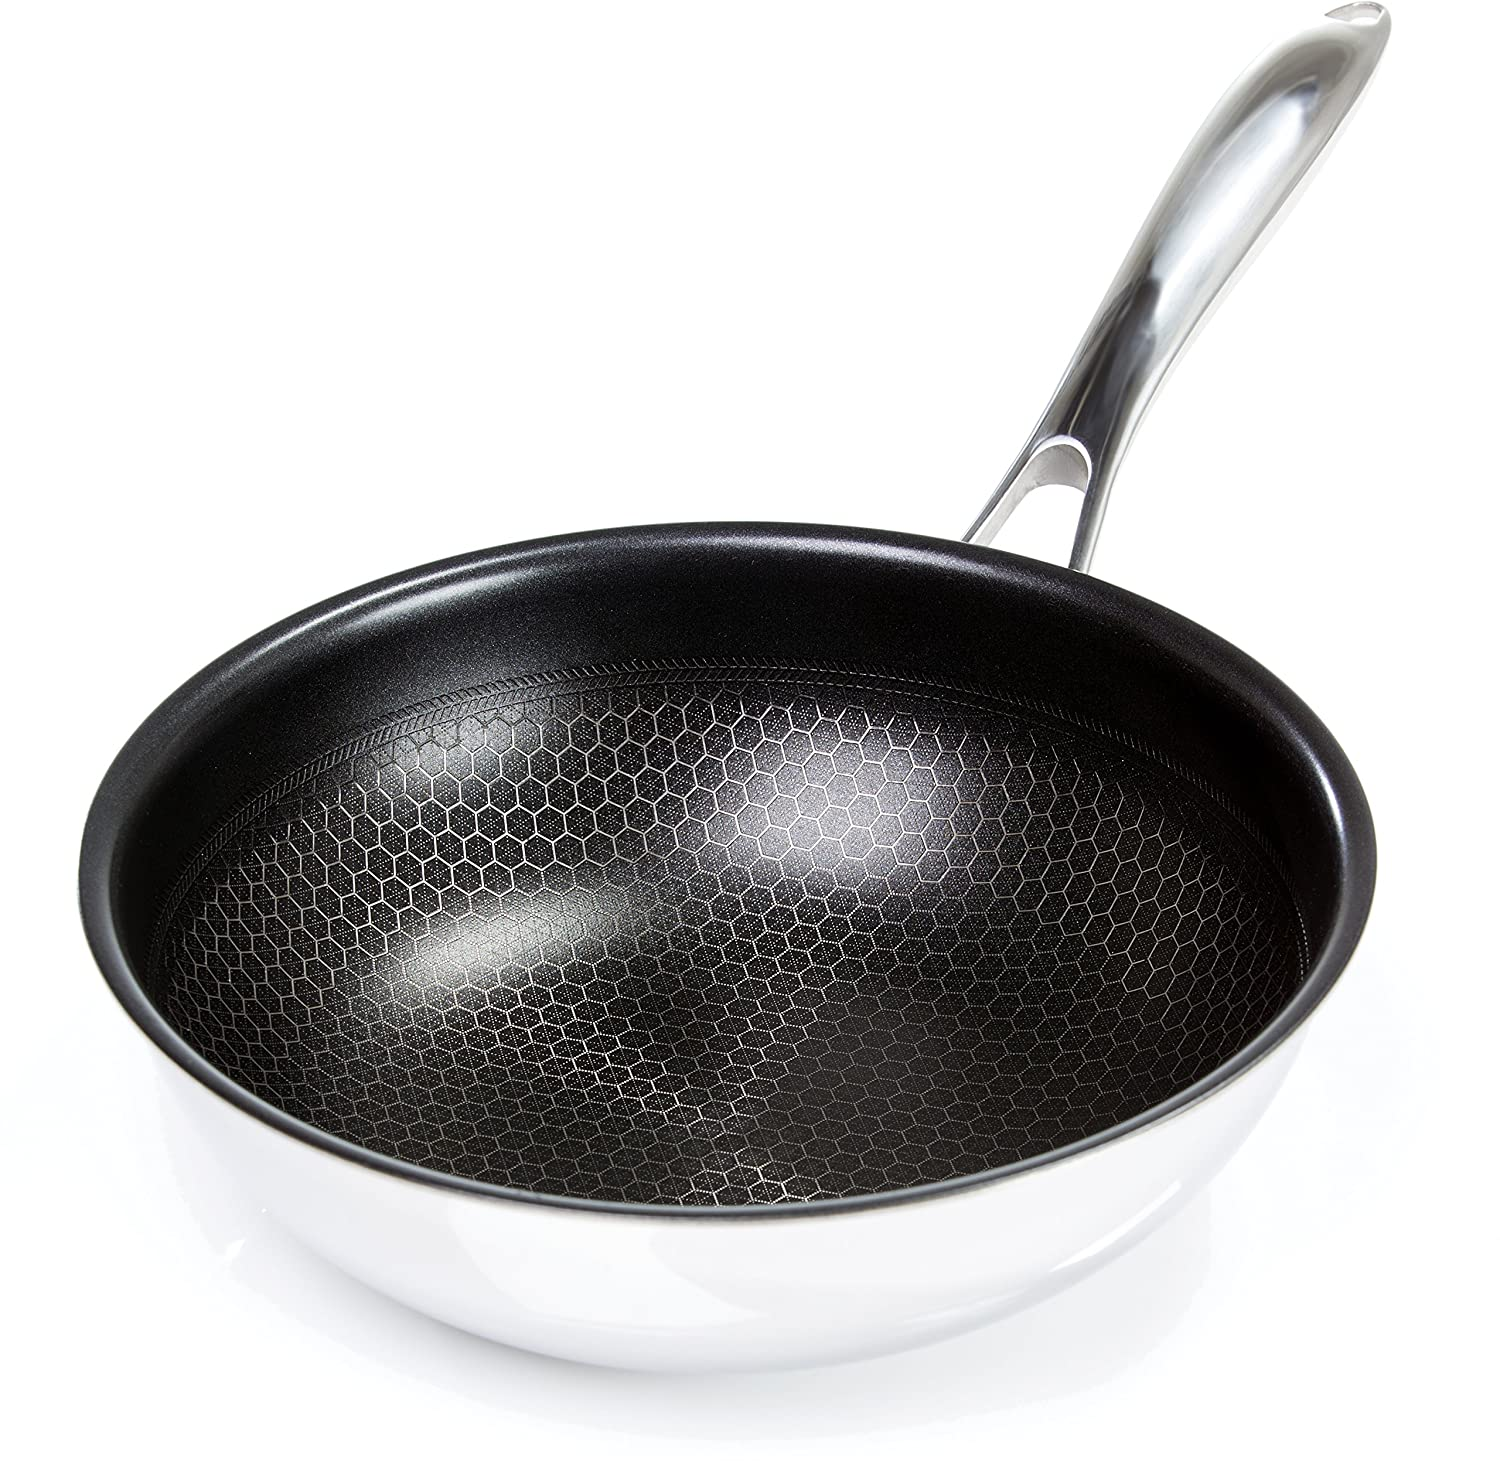 Frieling USA Black Cube Hybrid Stainless/Nonstick Cookware Chef's Pan, 9 1/2-Inch Diameter, 2.5 Quart